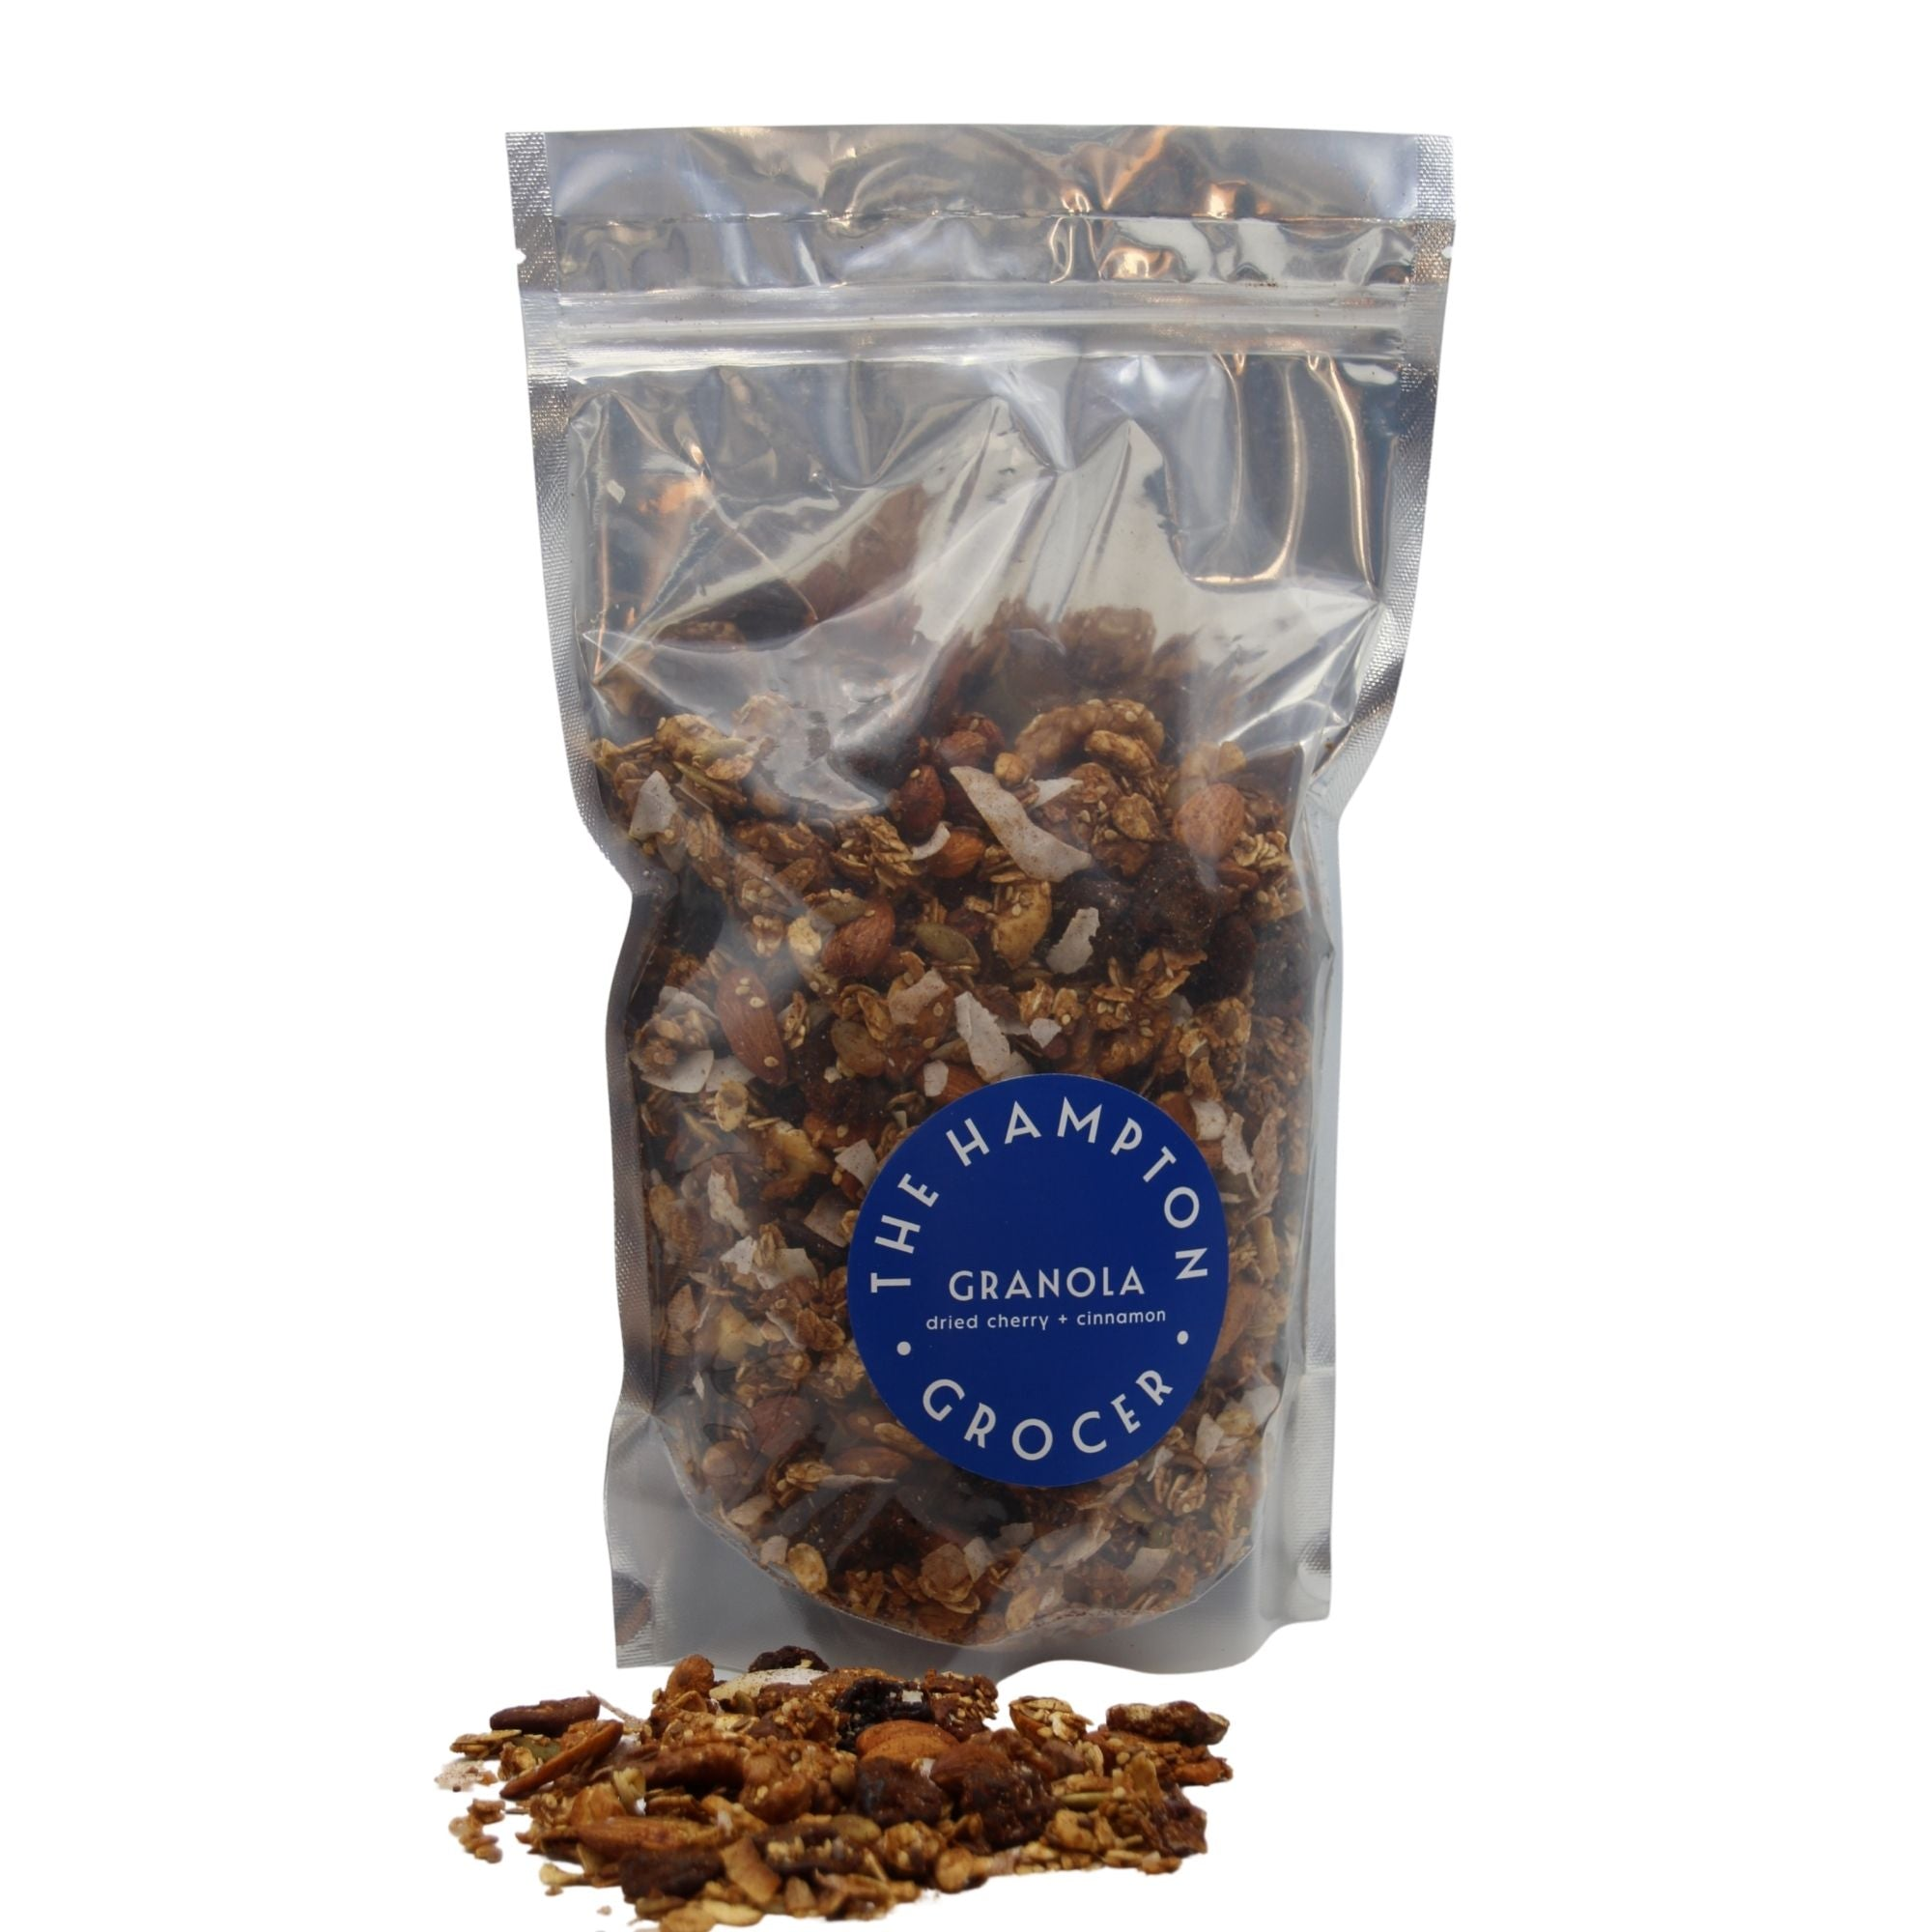 Original Granola - Refill Soft Pack - Dried Cherry + Cinnamon